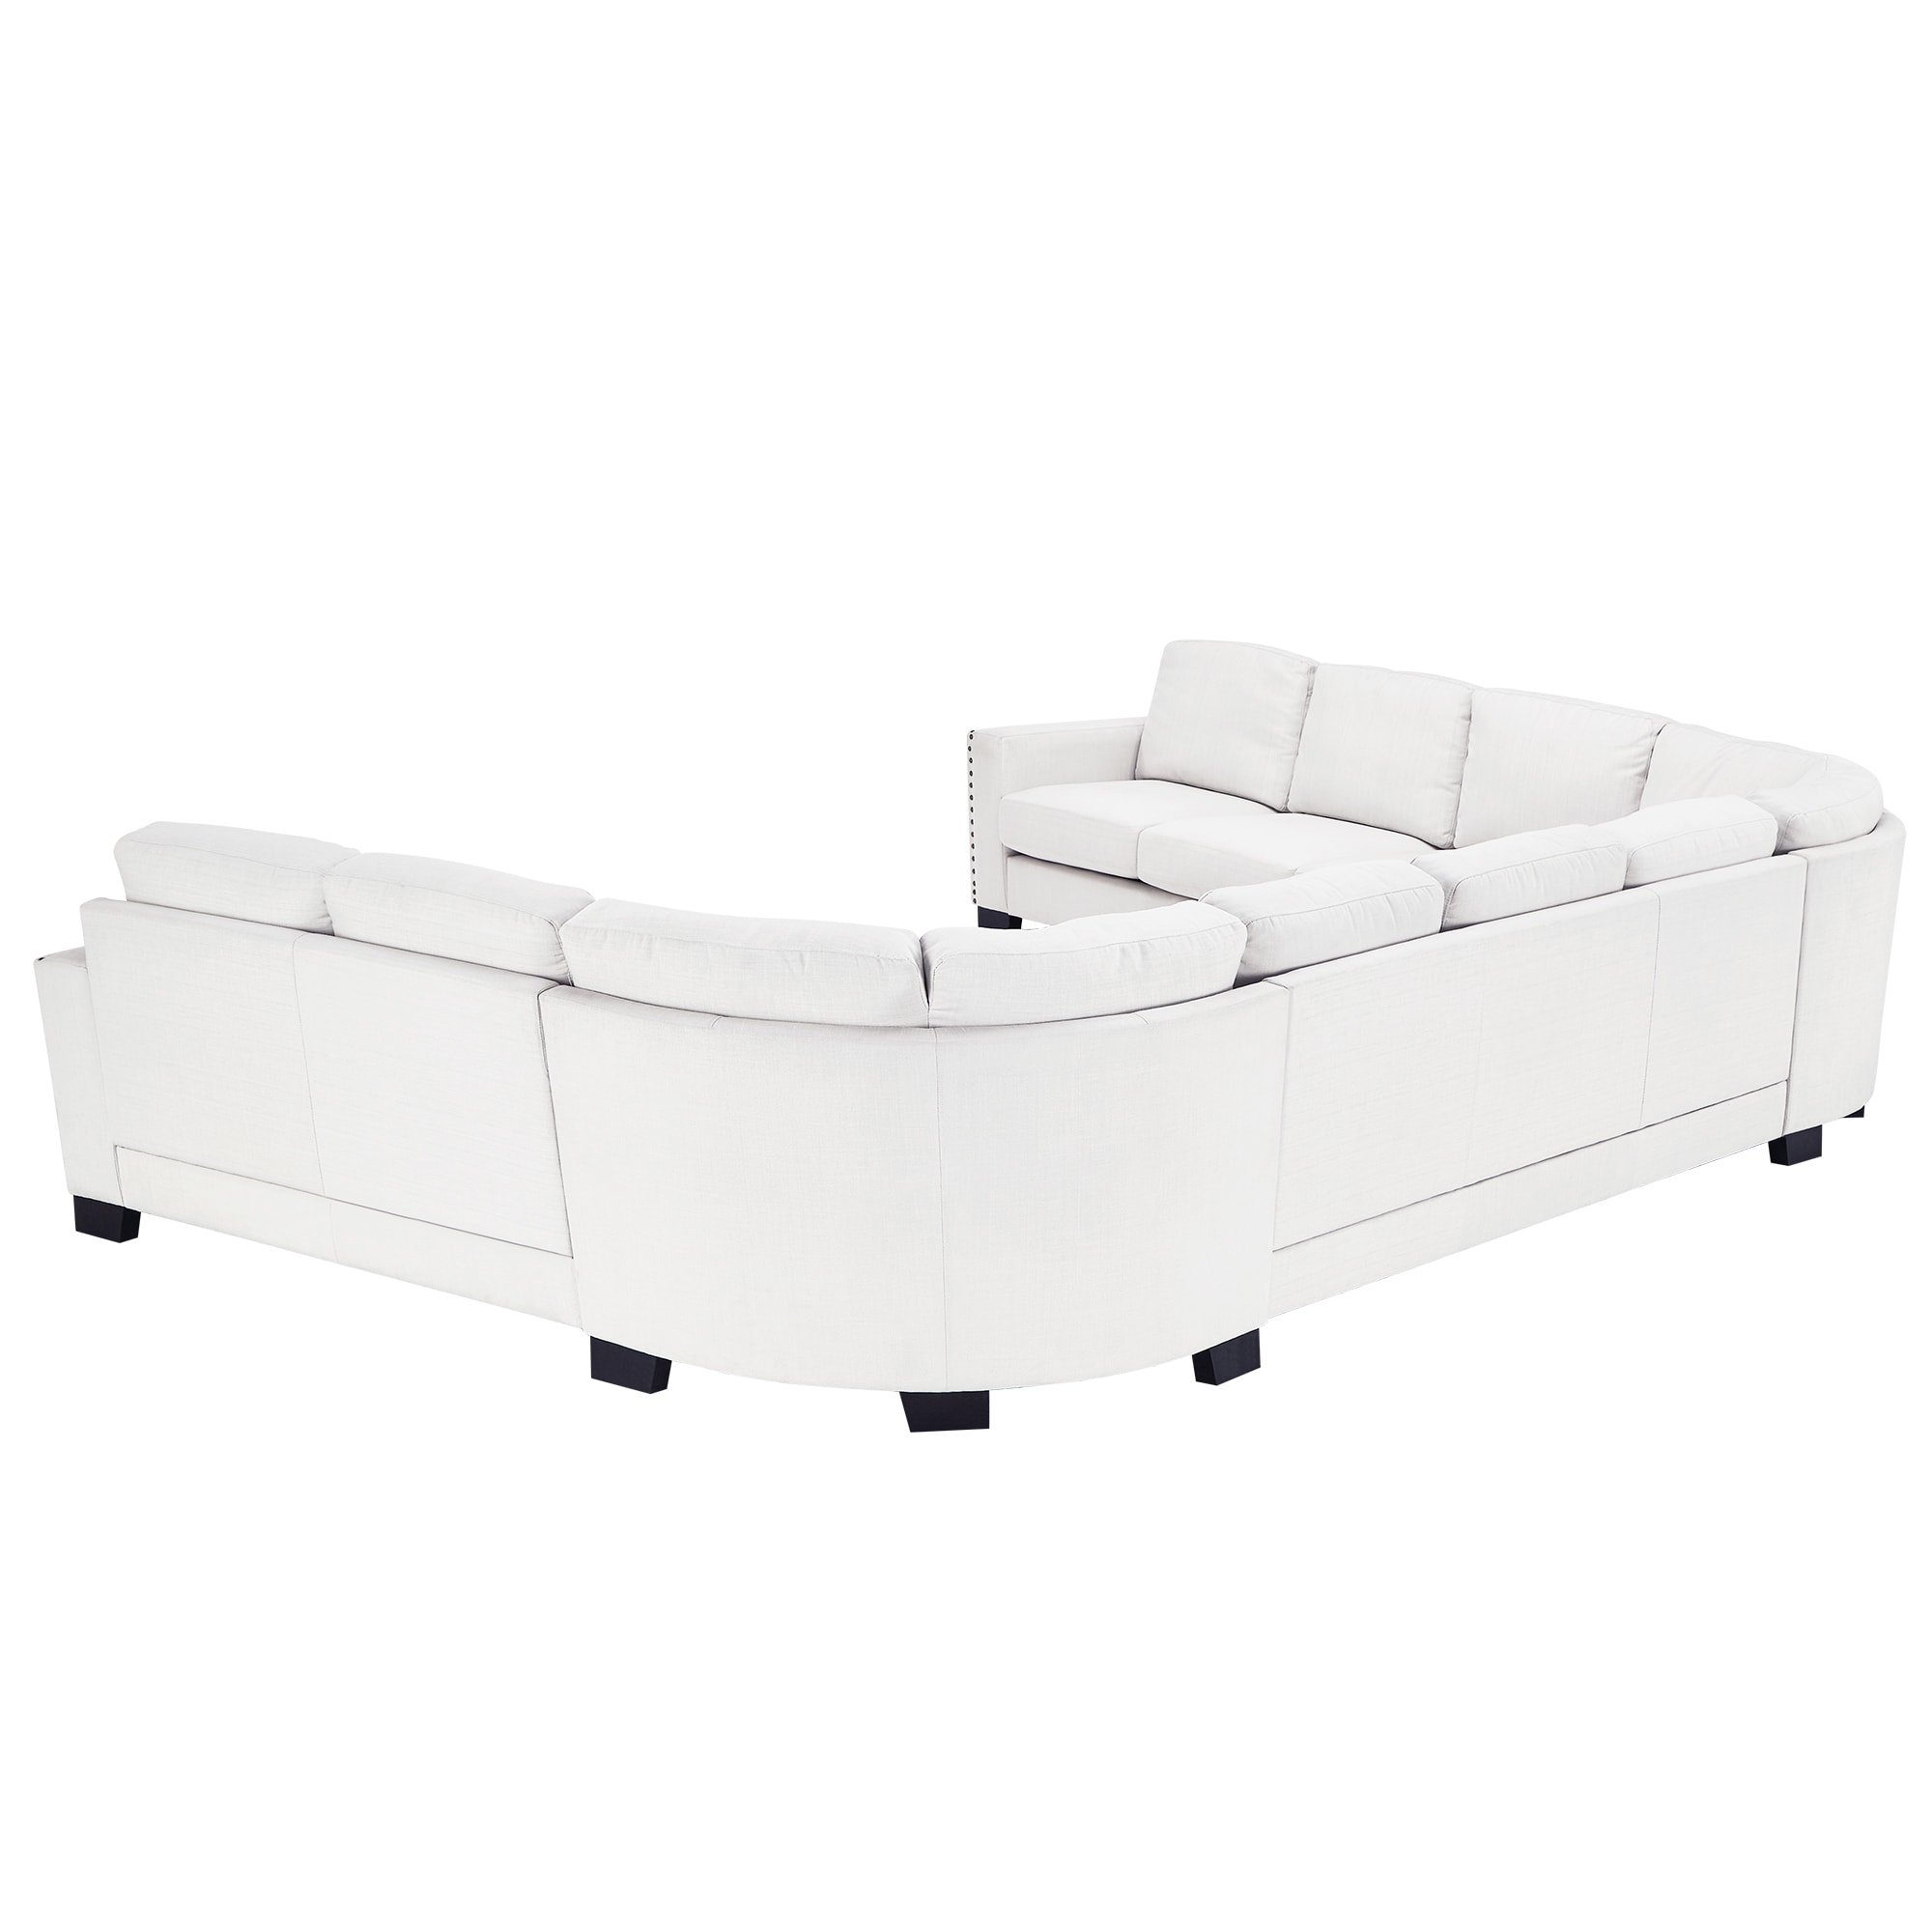 U Sofa Torrington Off White Linen Nailhead Track Arm U Shaped Configurable Sectional By Inspire Q Classic